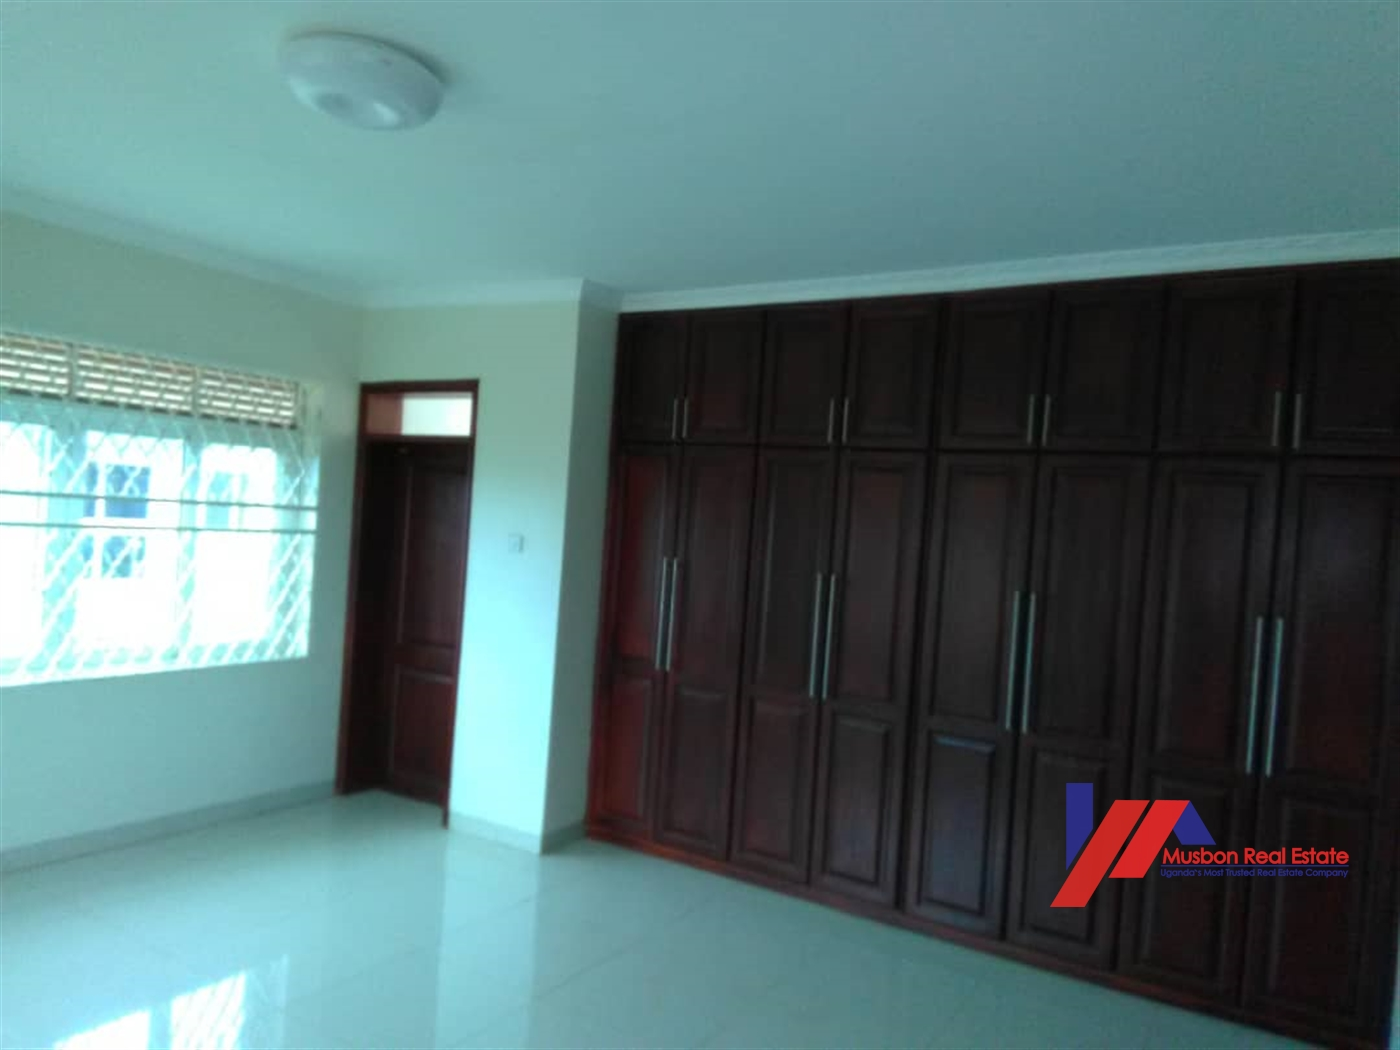 Mansion for sale in Mutungo Kampala